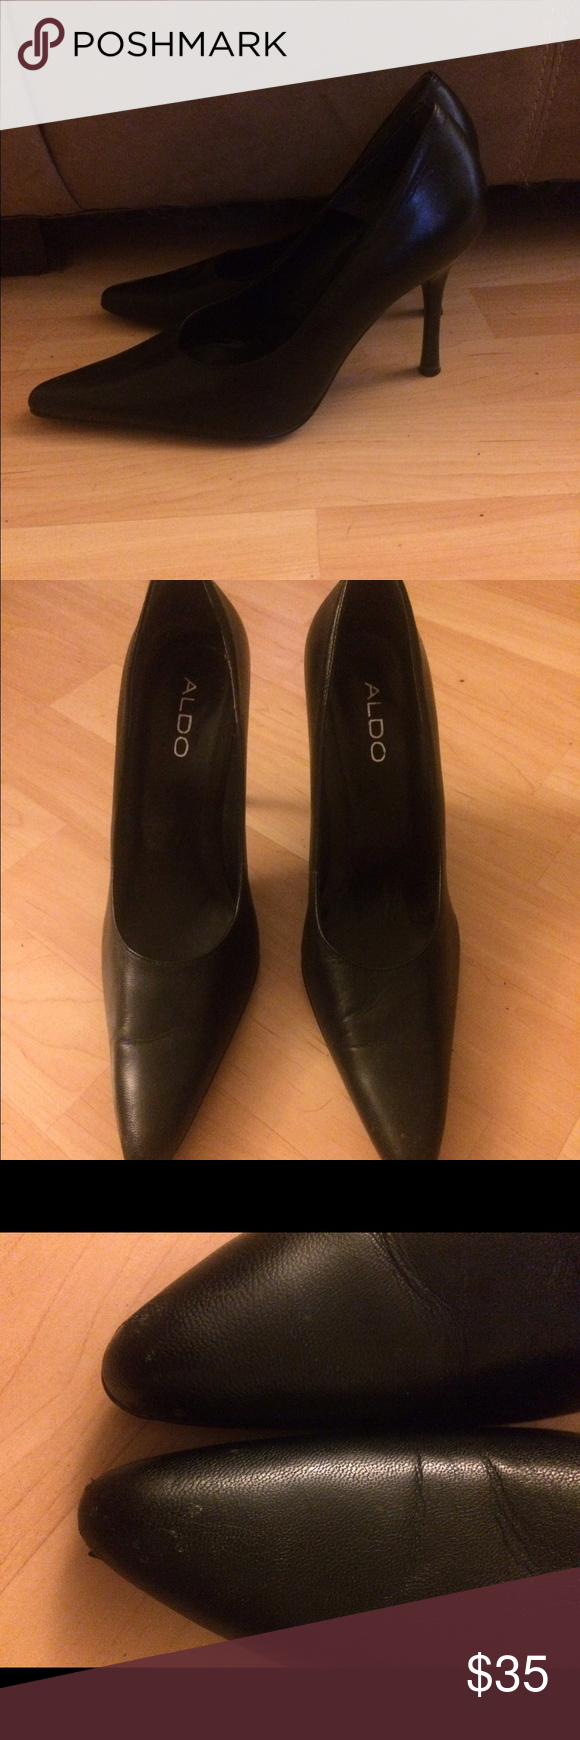 Aldo stiletto heels Fierce Aldo stiletto heels! 4 inch skinny heel, pointed toe. Rarely worn- only imperfections are slight peeling and fading at toes, not noticeable unless up close and some scuffs on the bottom. All black. Leather upper and man made sole. Size 39/9 but a tight fit. ALDO Shoes Heels